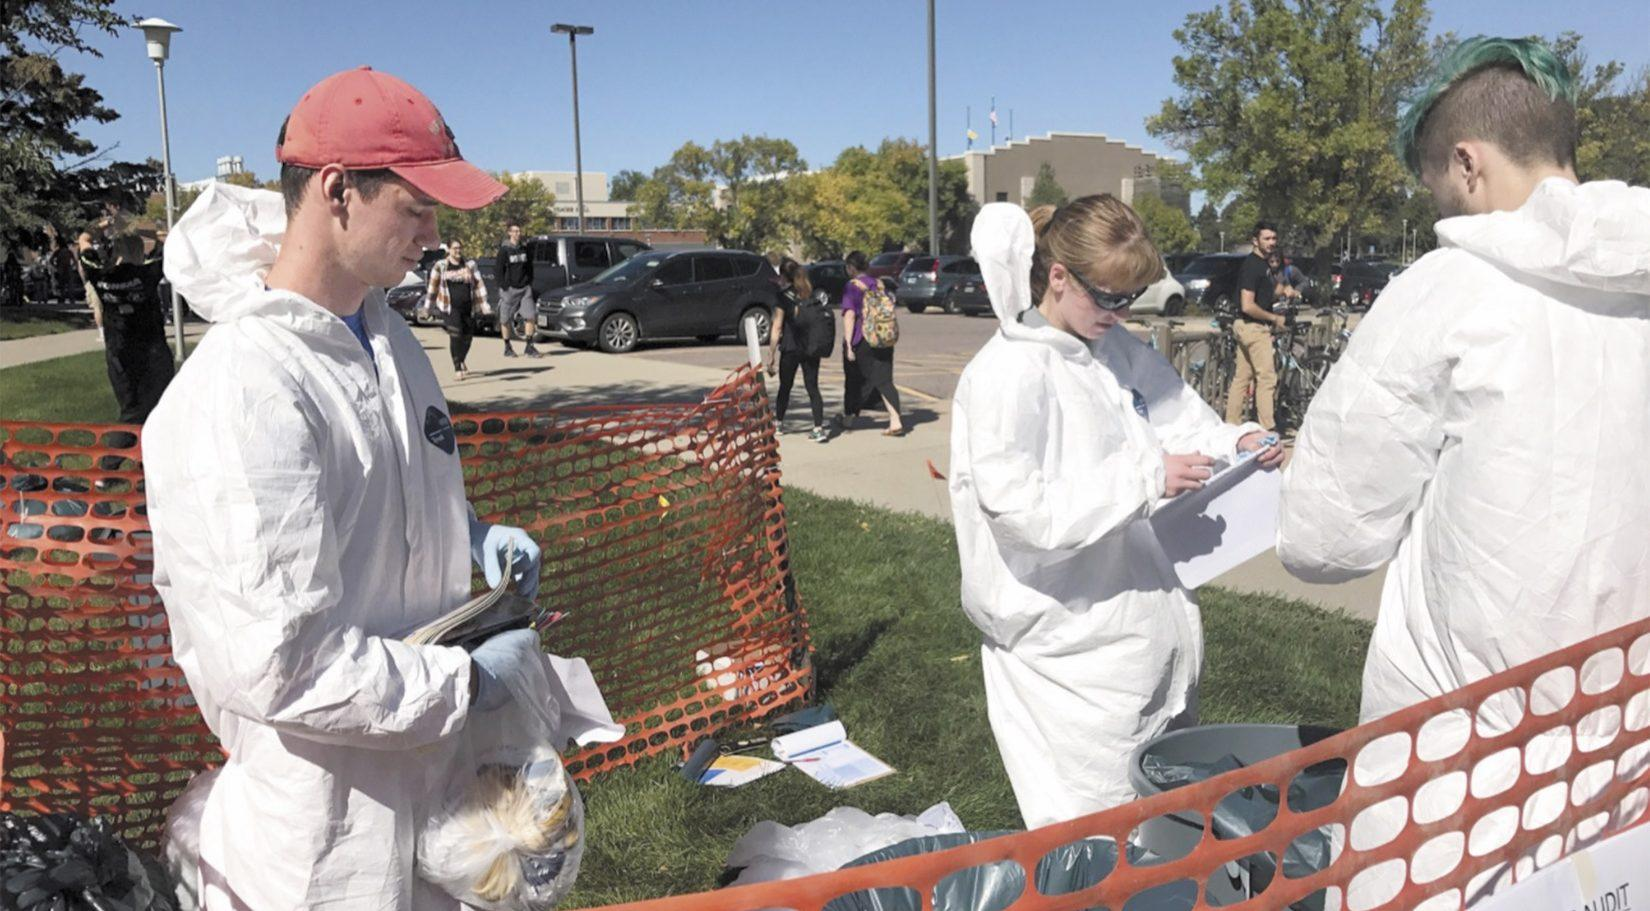 MACKENZIE HUBER Sustainability Specialist Jennifer McLaughlin, Sustainability Council President Kory Heier and Dylan Lewark, freshman computer science major, sort trash for a waste audit in front of The Union Sept. 20.